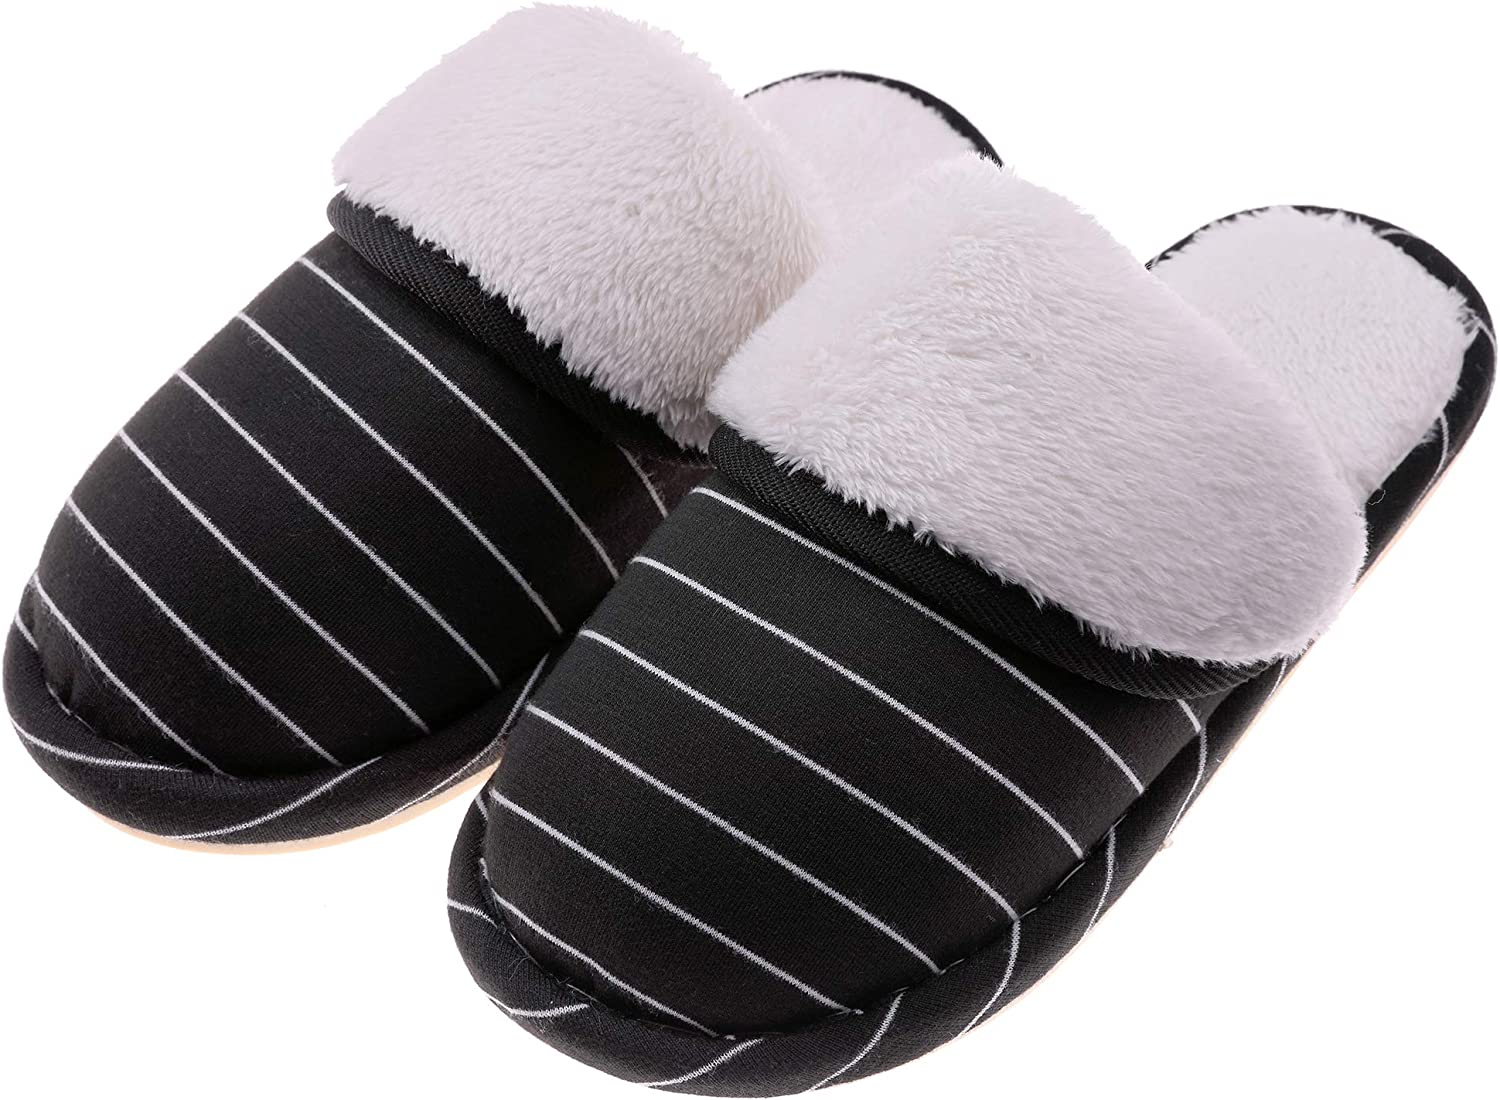 RONGblueE Women's Comfort Warm Memory Foam Slippers Plush Lining Slip-on House shoes Indoor & Outdoor